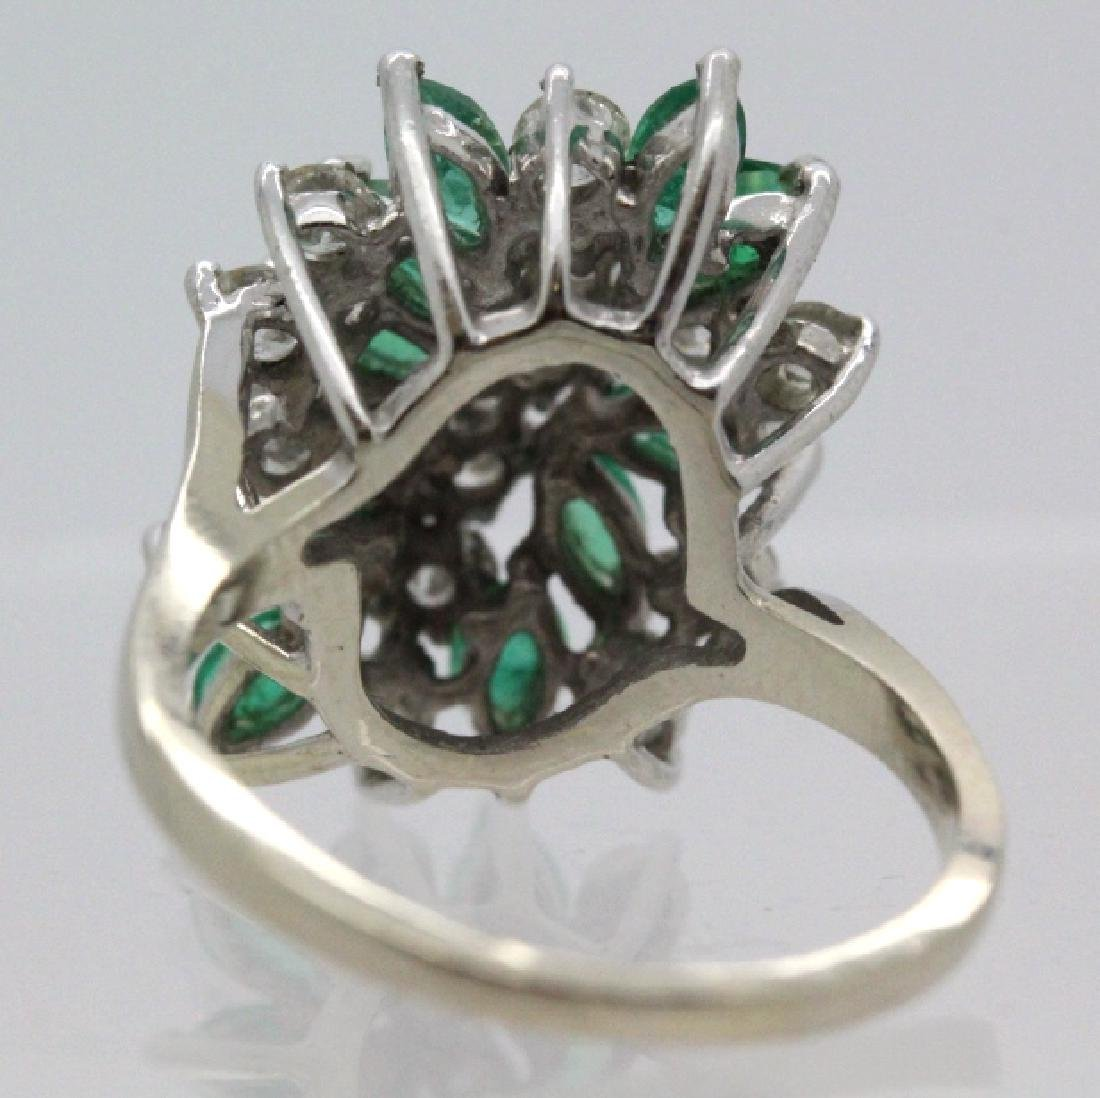 Retro Period 14k Diamond & Emerald Waterfall Ring - 6